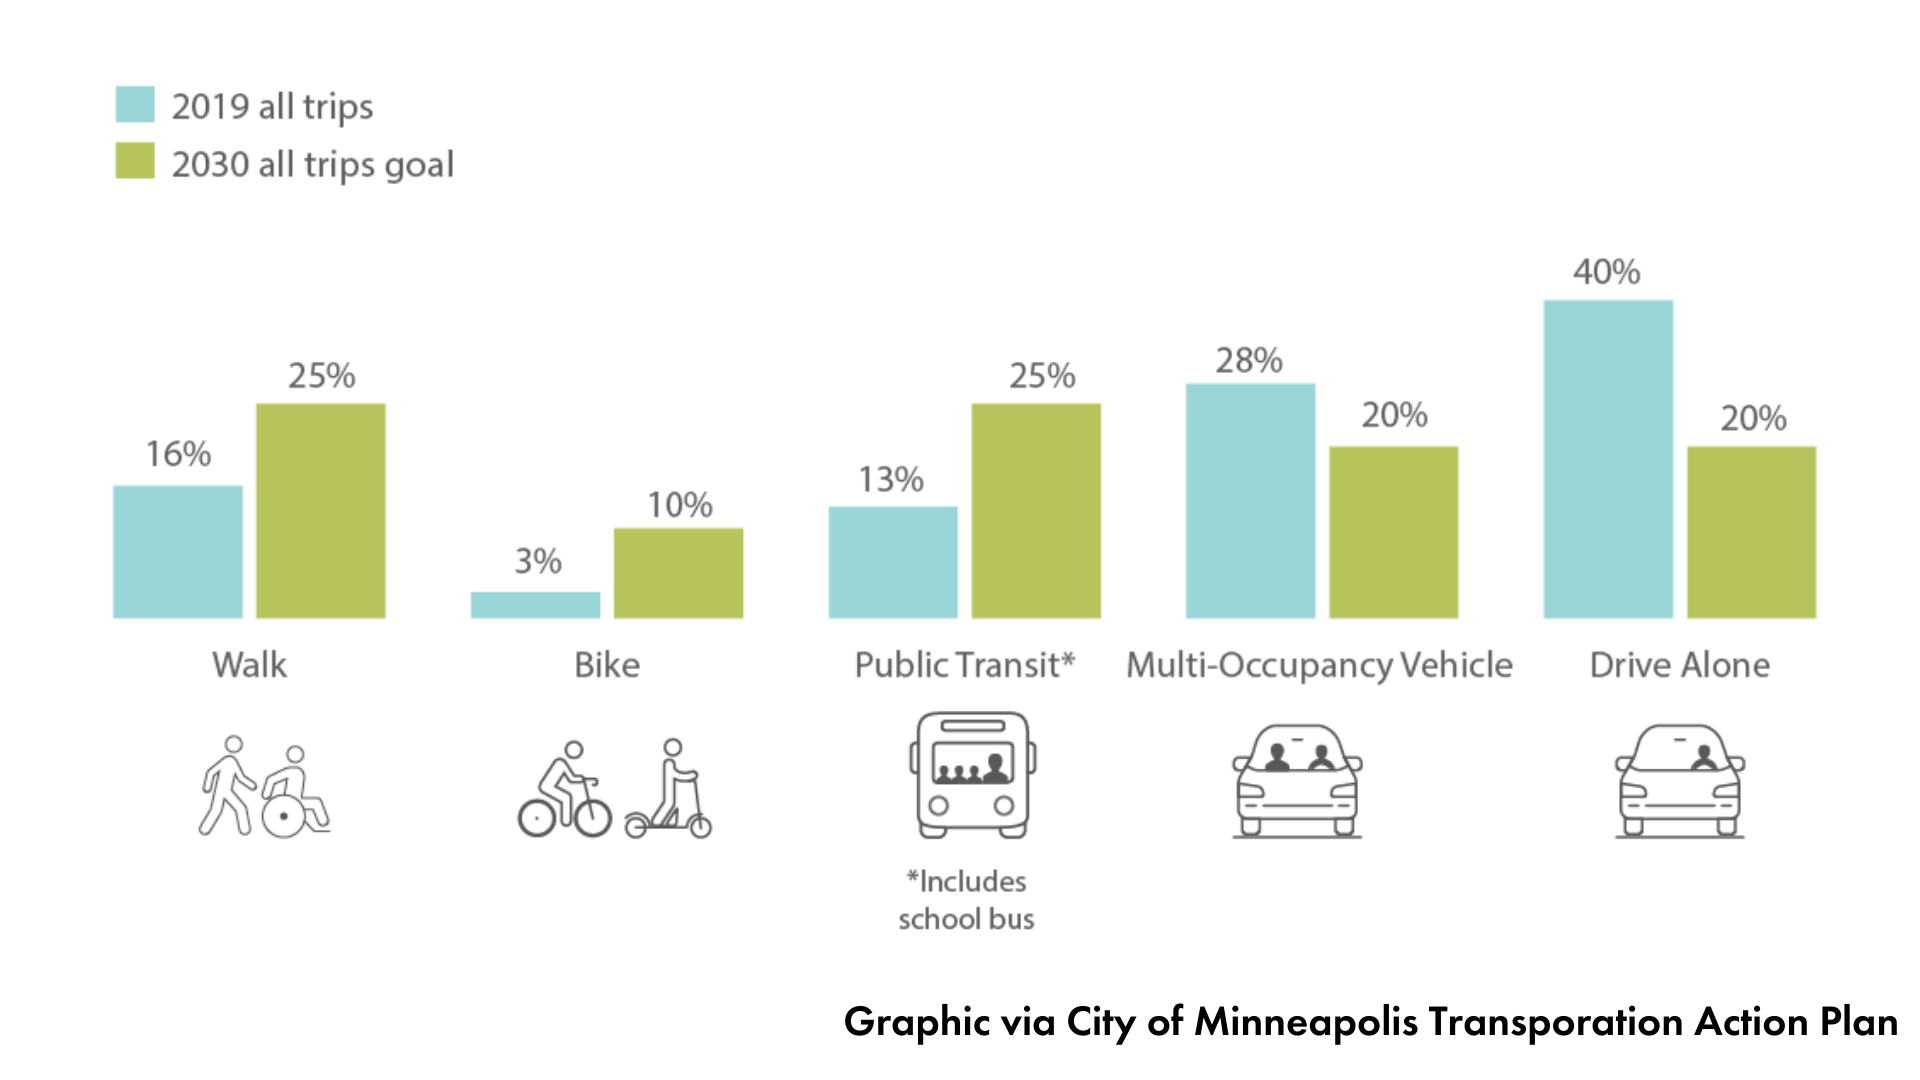 Bar graph showing mode share data from all trips in 2019 and 2030 mode share goals. Walk: 16% in 2019 to 25% in 2030, bike: 3% to 10%, public transit: 13% to 25%, multiple occupant vehicle: 28% to 20%, single occupant vehicle: 40% to 20%